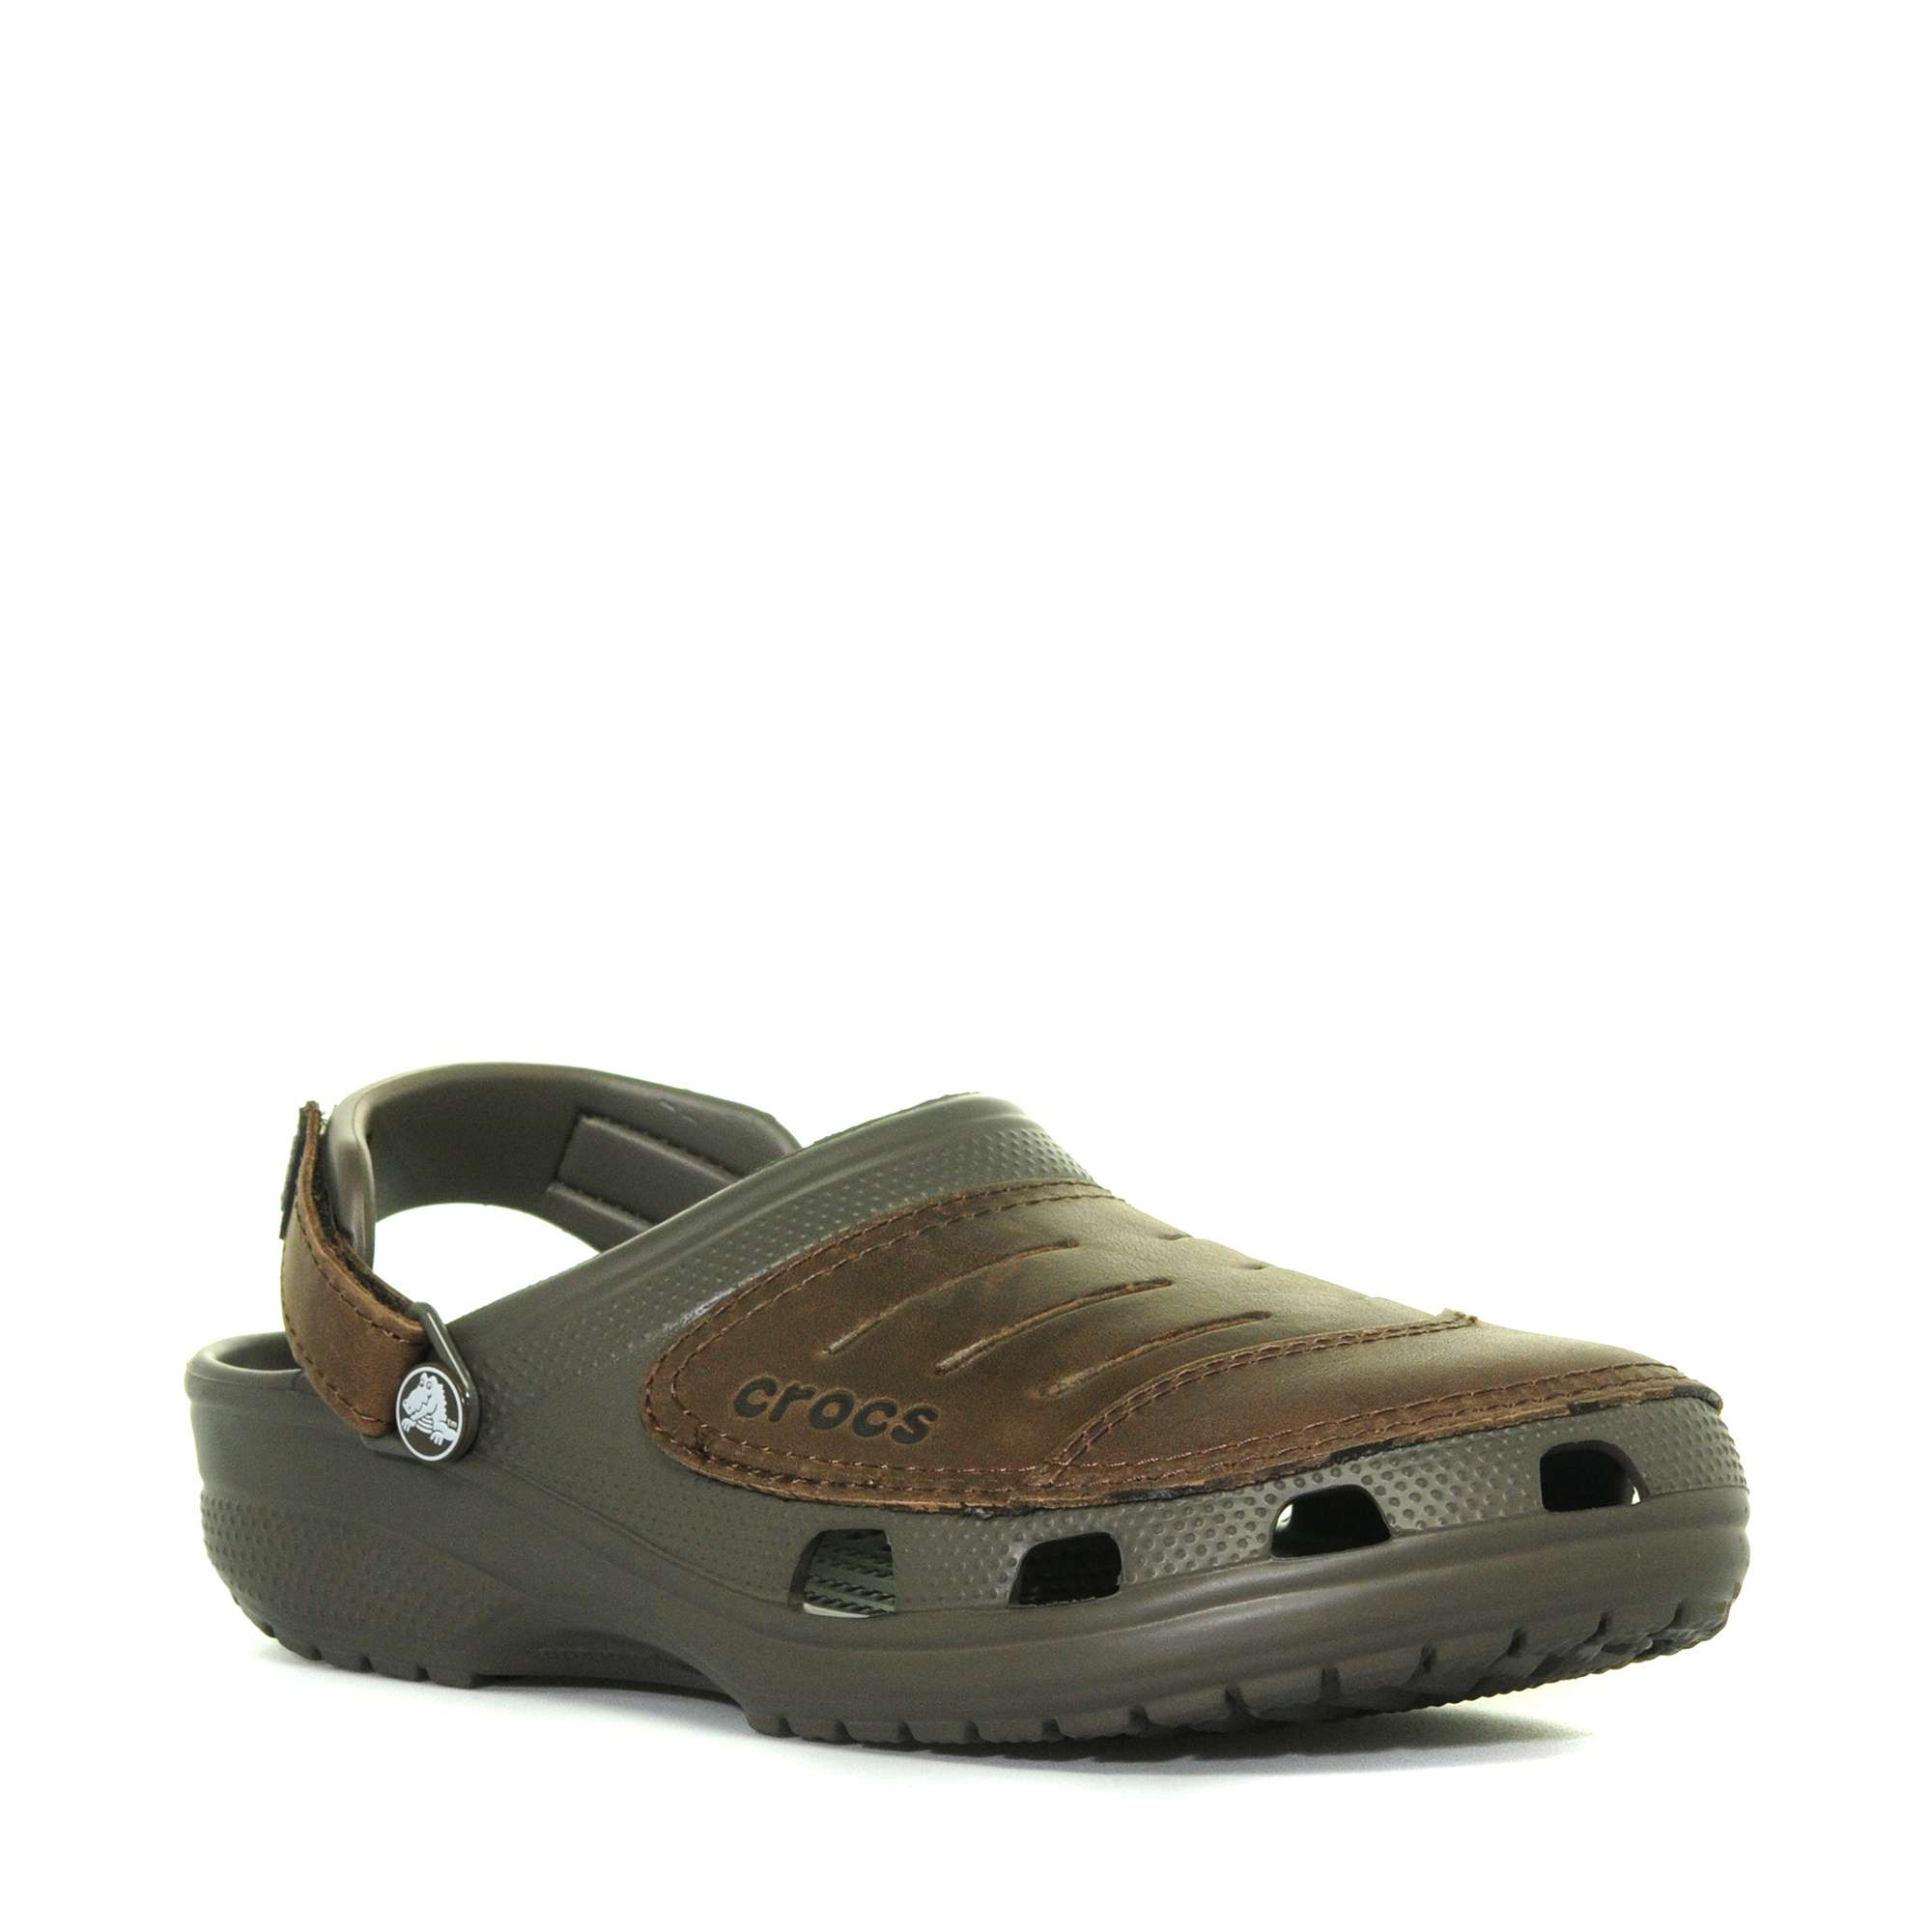 CROCS Men's Yukon Shoe